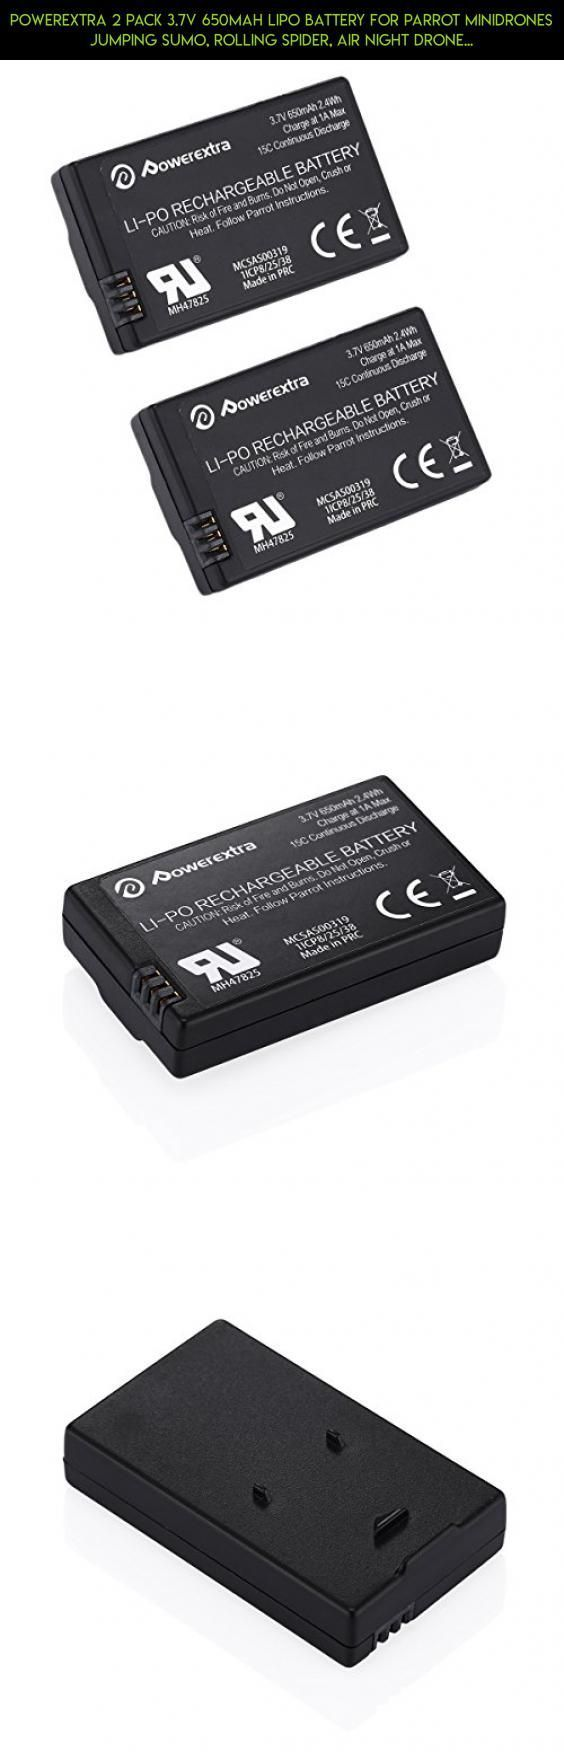 Powerextra 2 Pack 37v 650mah Lipo Battery For Parrot Minidrones Rolling Spiders White Jumping Sumo Spider Air Night Drone Airborne Cargo Race